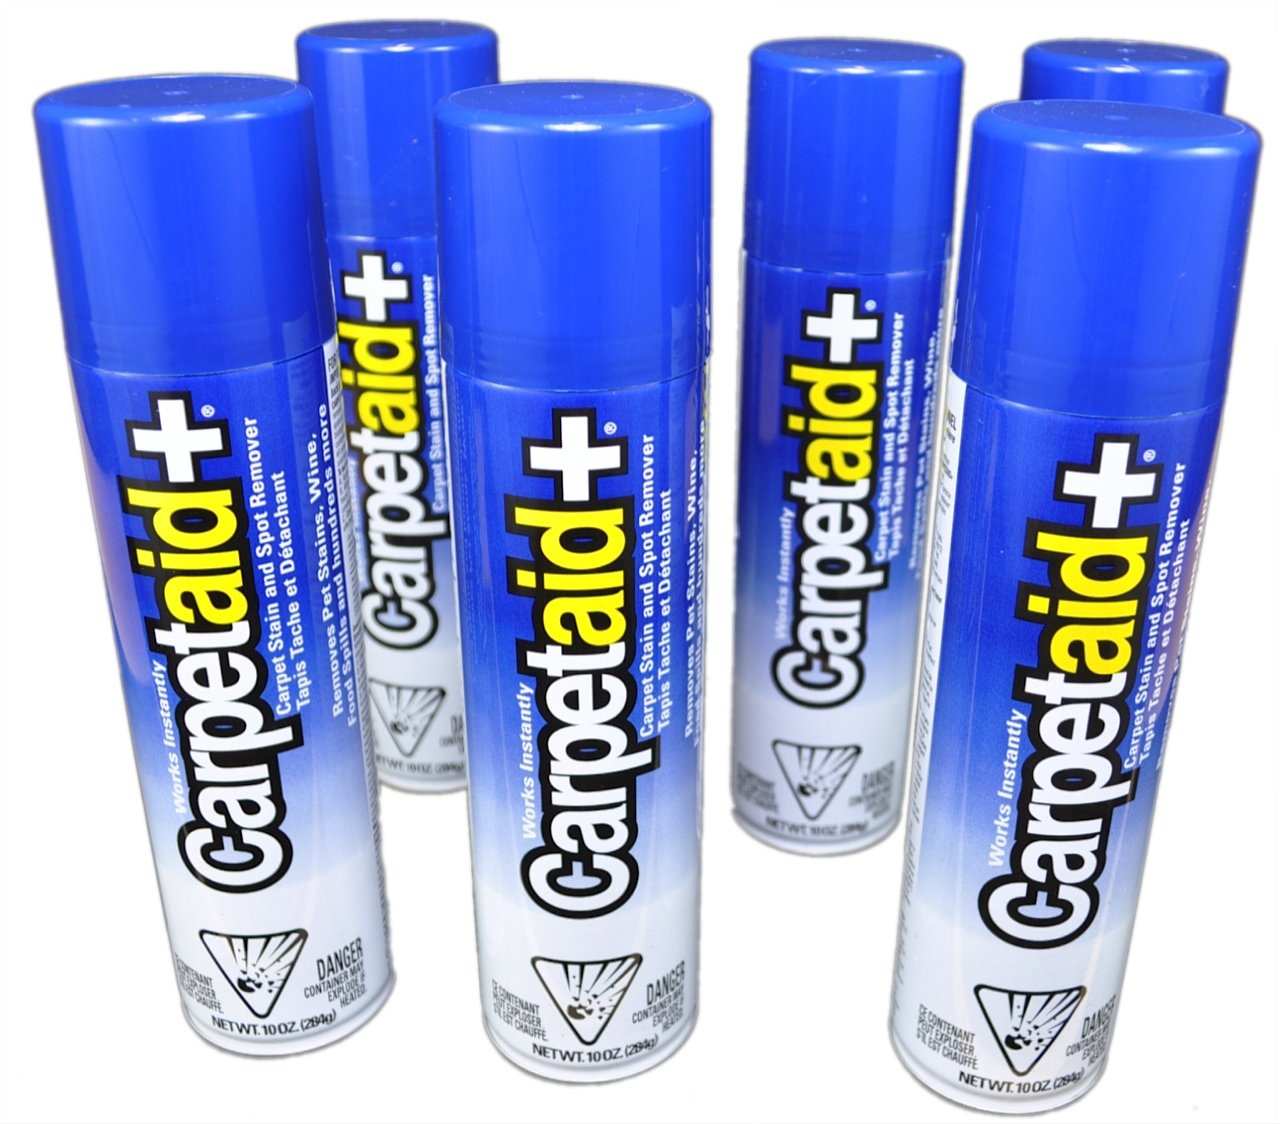 10 Oz. CarpetAid+ Carpet Stain Remover & Spot Cleaner (Pack of 6 Cans): Easily and Effectively Remove Food, Drink, Dirt, Mud, Pet, and Other Stubborn Stains Instantly; No Rubbing or Scrubbing